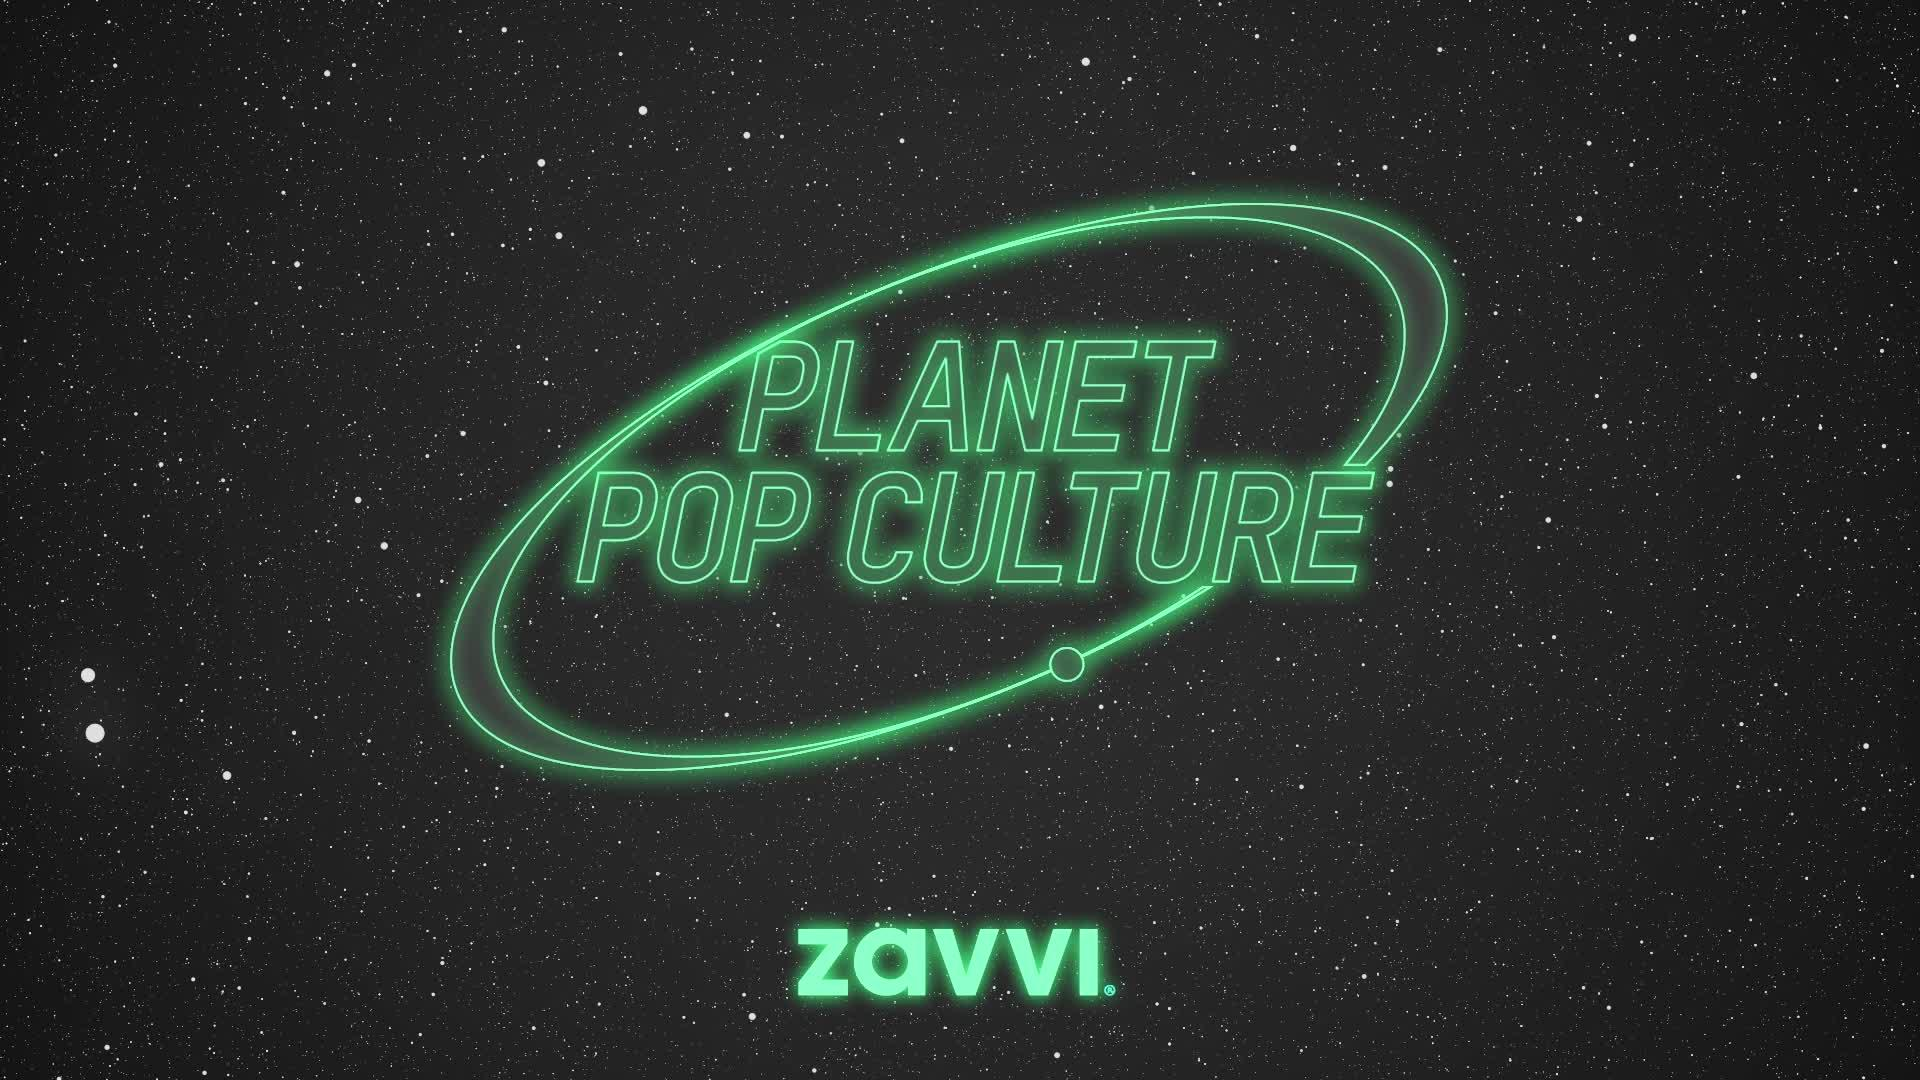 Save extra $5 OFF when you sign up at Zavvi